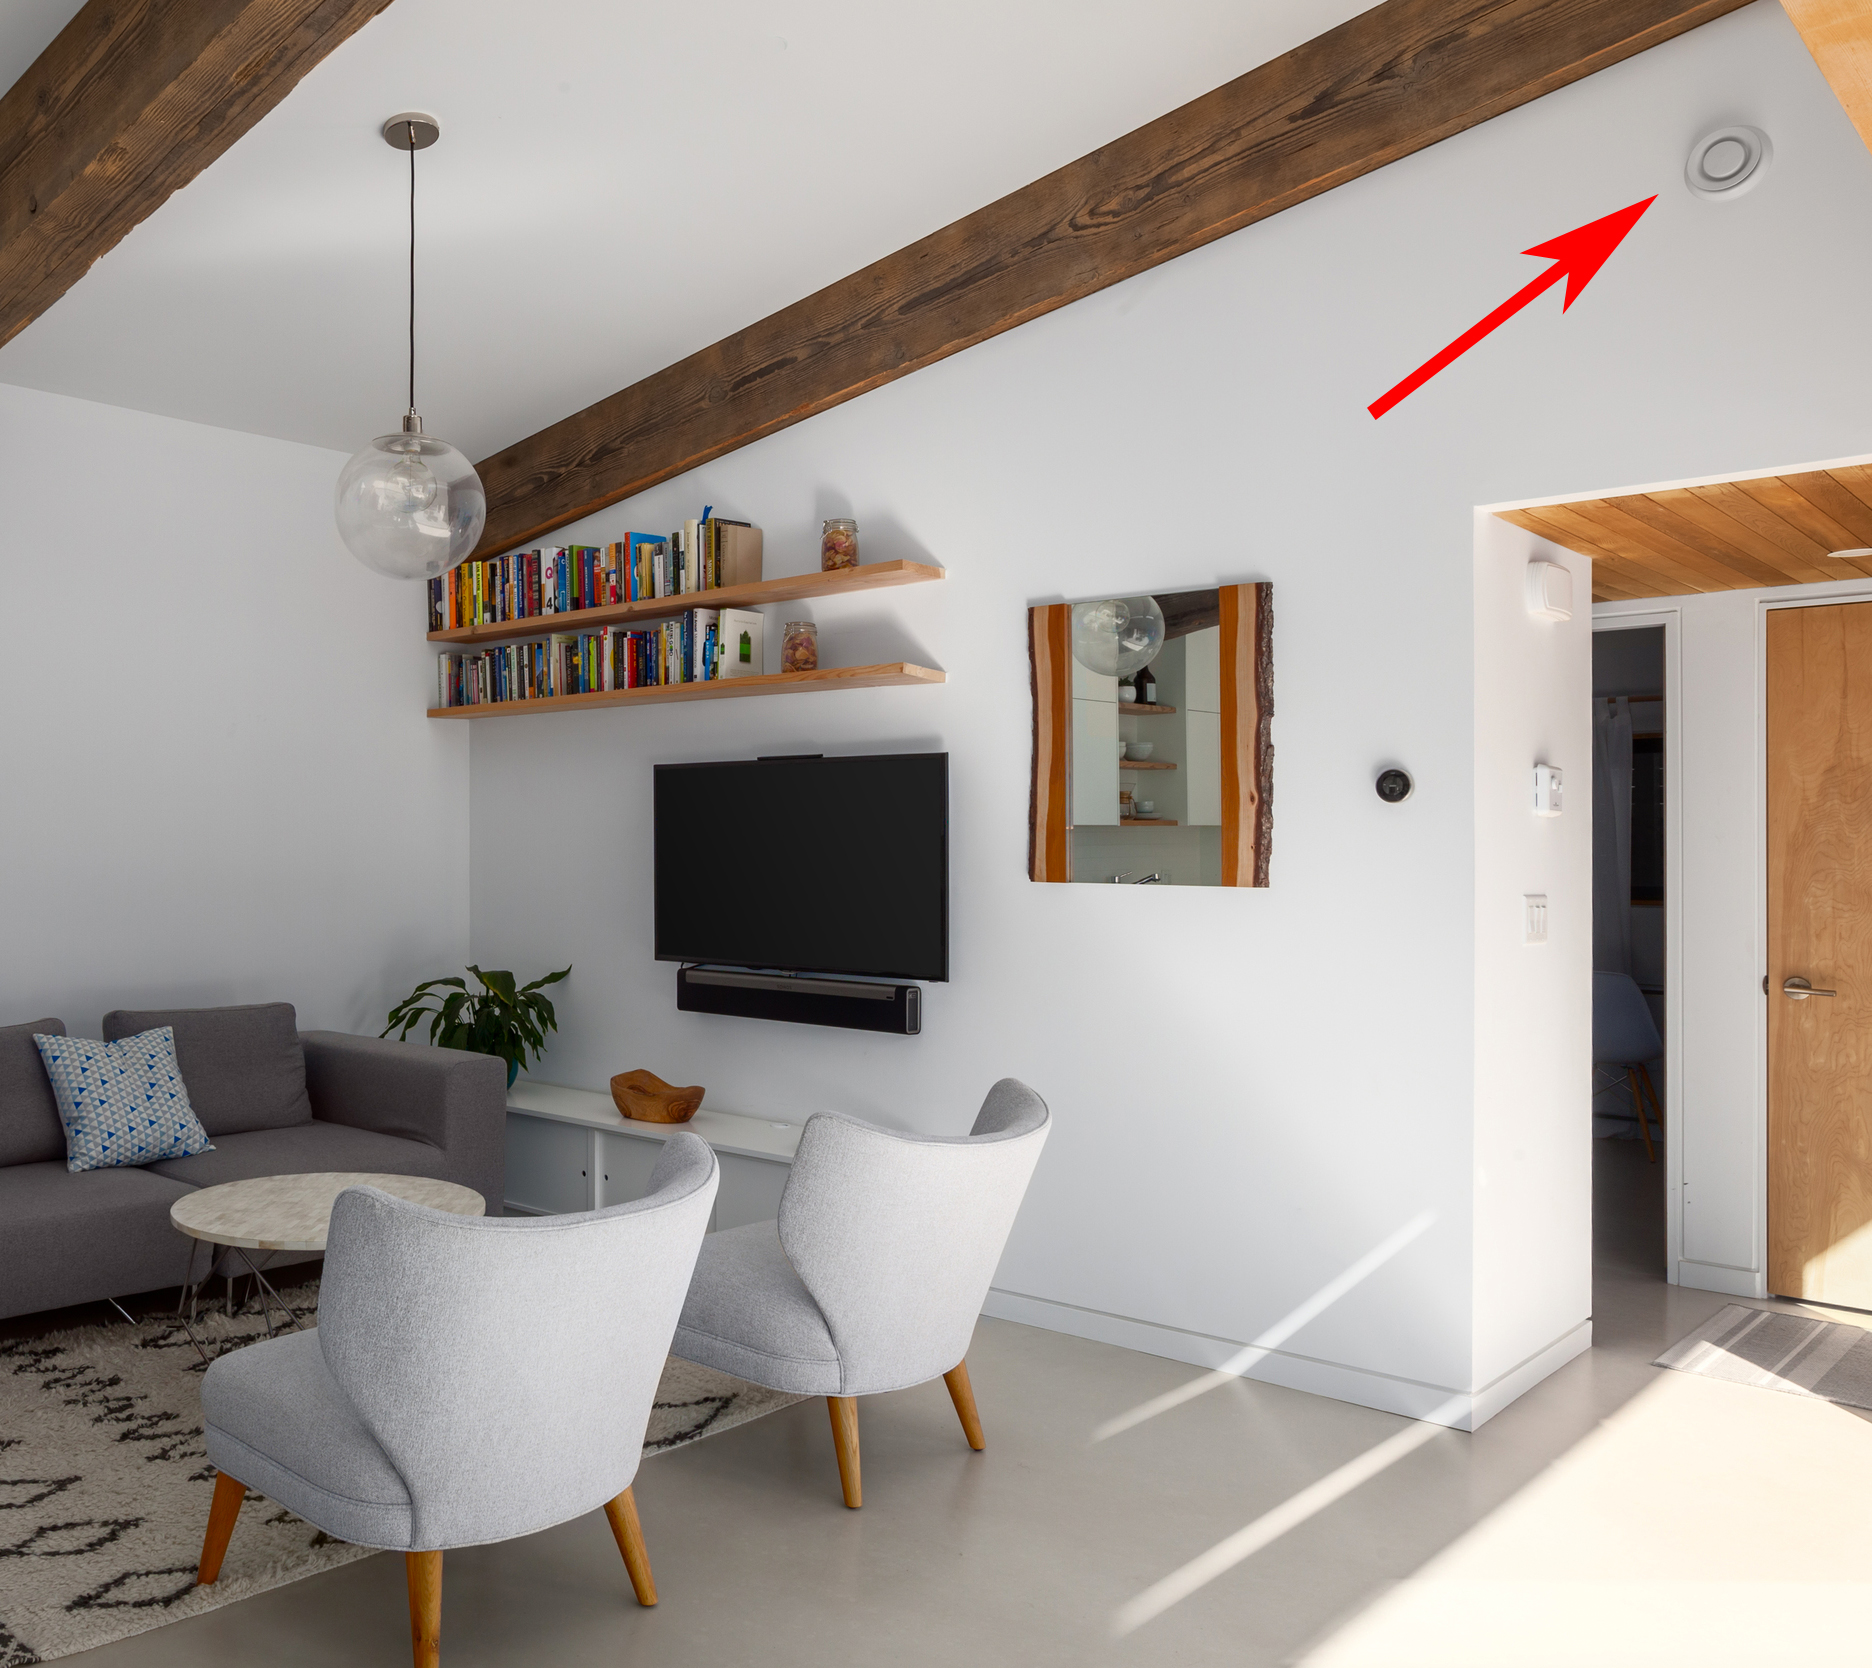 Air outlets on the wall or ceiling supply fresh air to every room. Moist / stale air is exhausted from the bathrooms and kitchens.